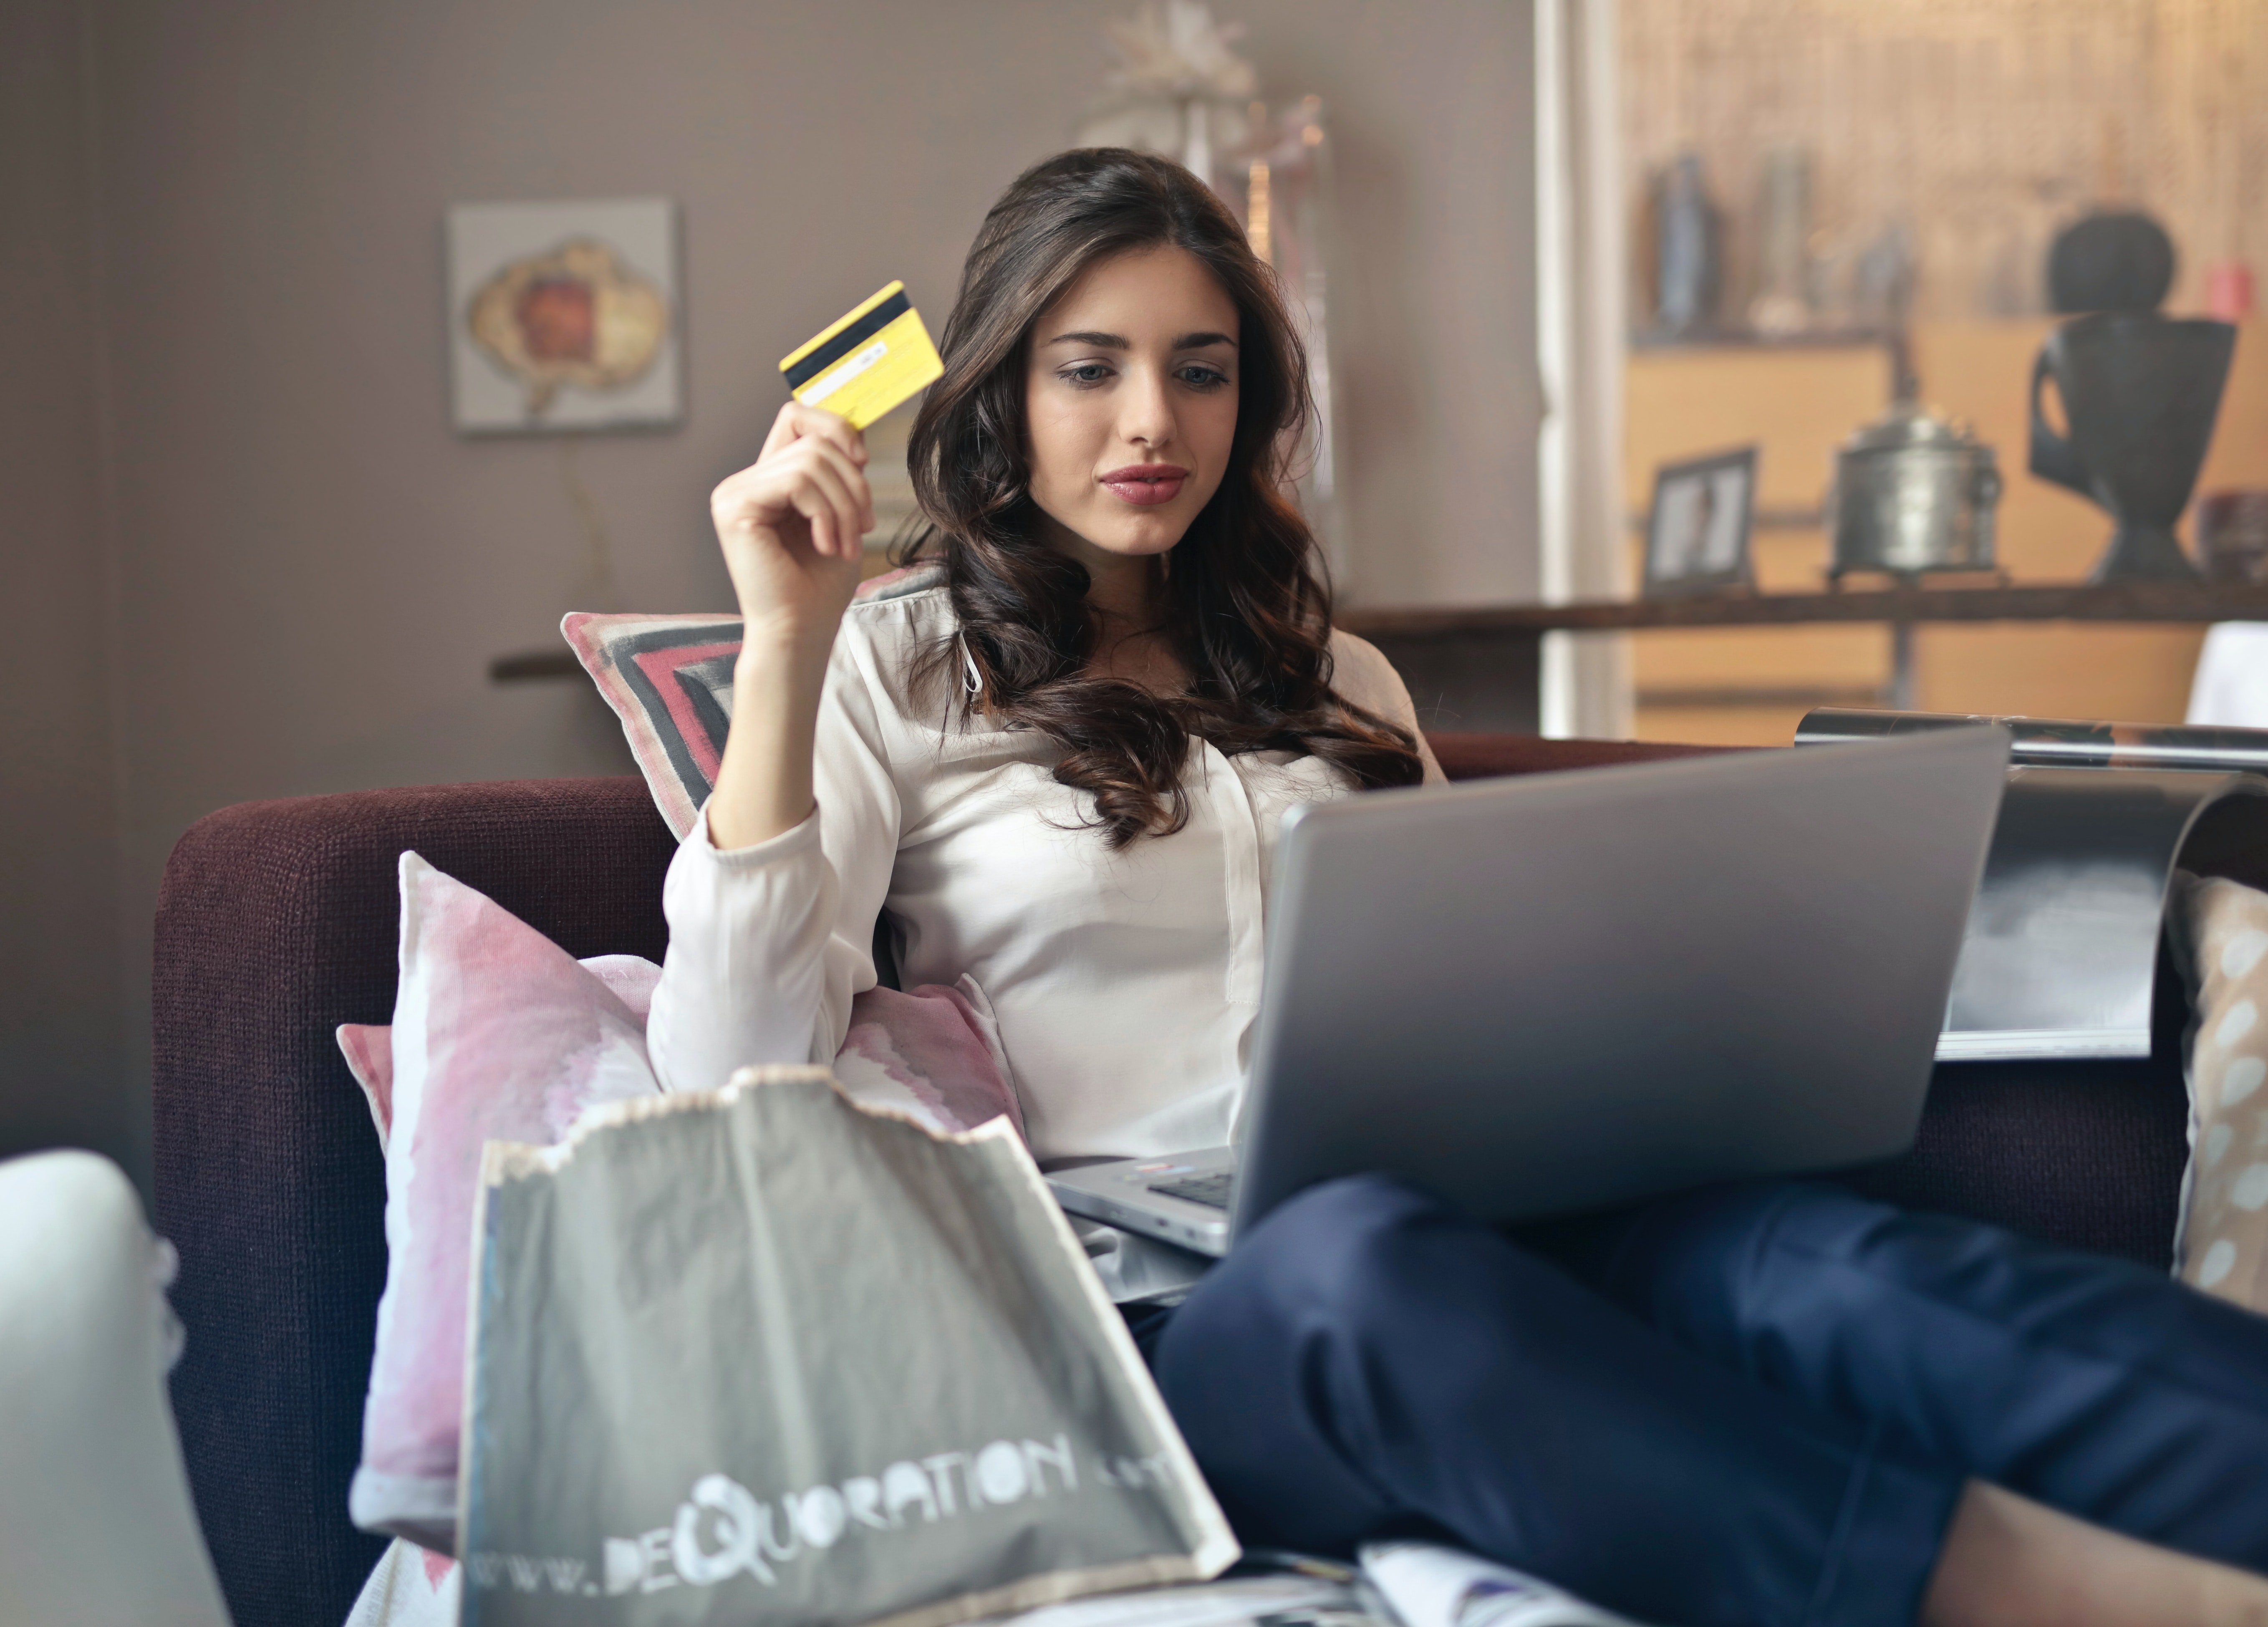 Woman holding credit card | Photo: Pexels